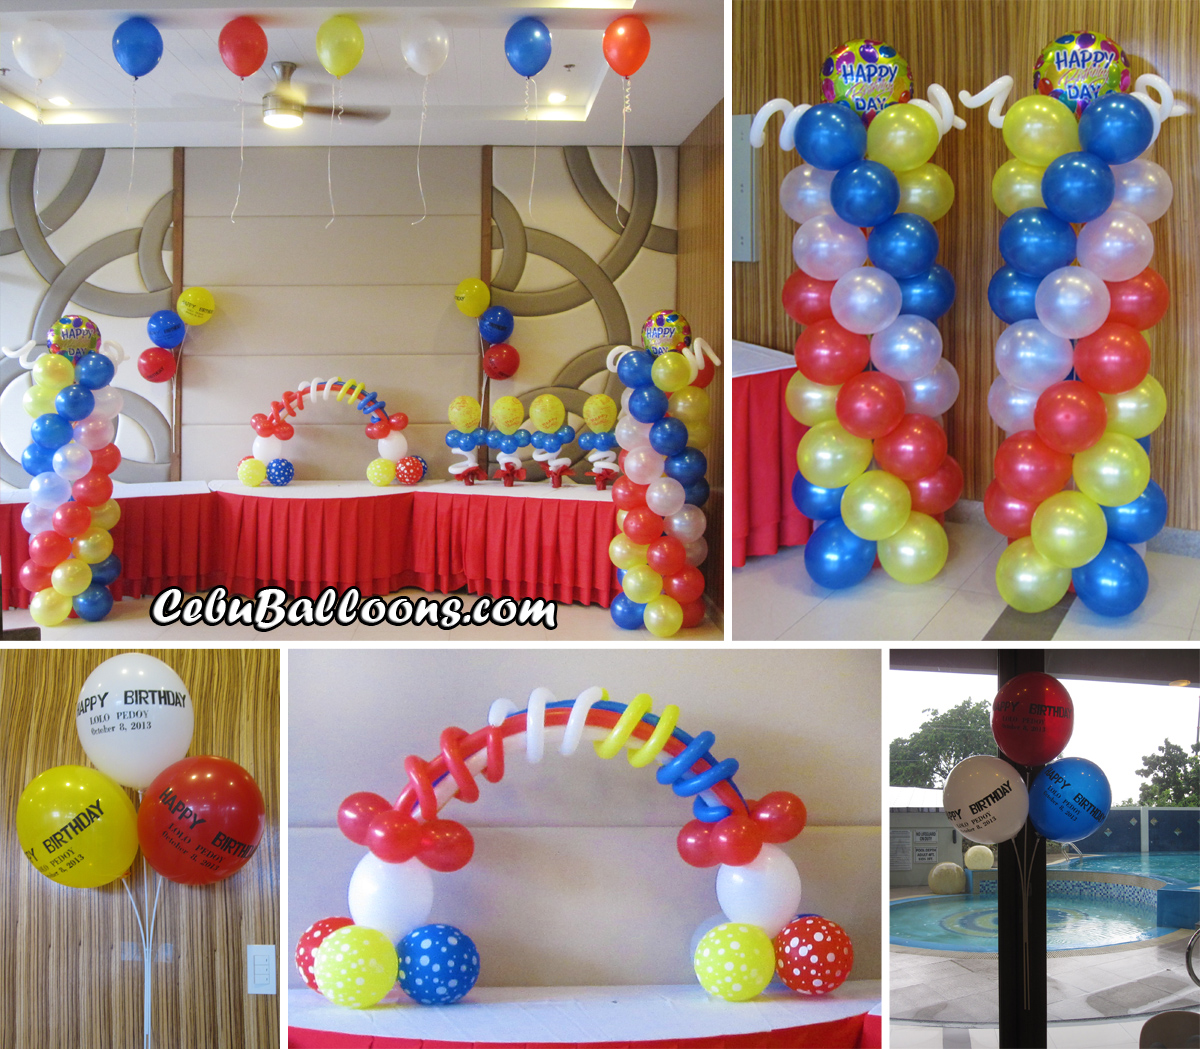 90th birthday balloon decoration at avalon ayala cebu for Balloon decoration for parties